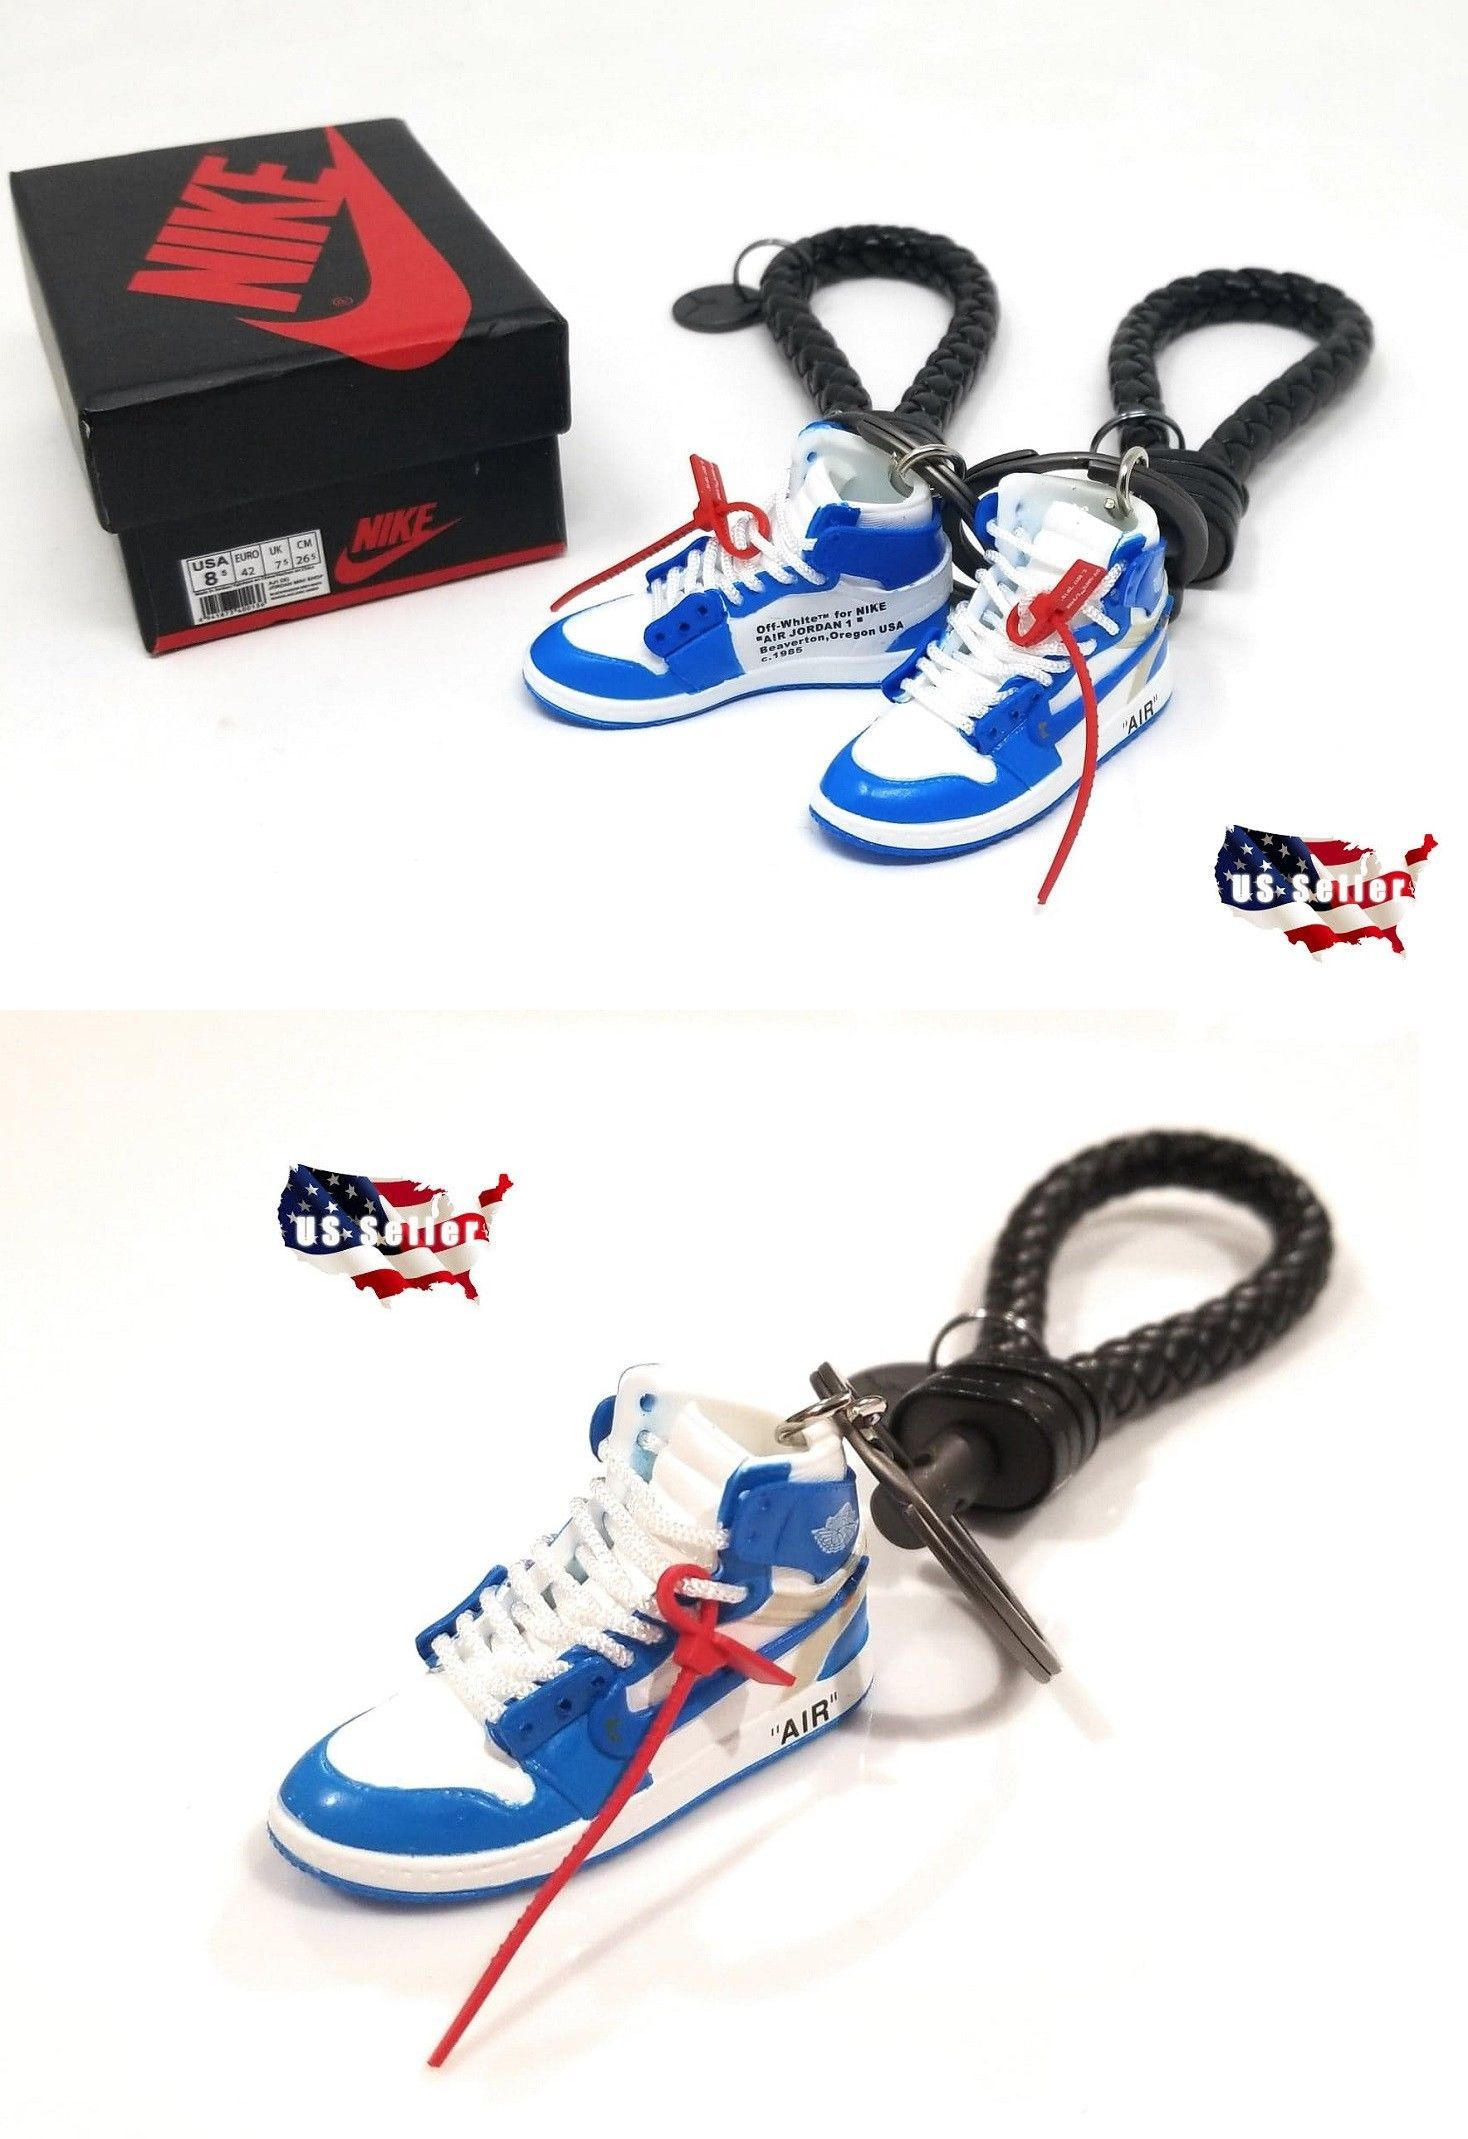 Key Chains Rings and Cases 52373  Air Jordan 1 Off White Unc - 3D Sneaker  Keychain - Single Gift Set - New -  BUY IT NOW ONLY   27.99 on  eBay   chains ... dea58942f